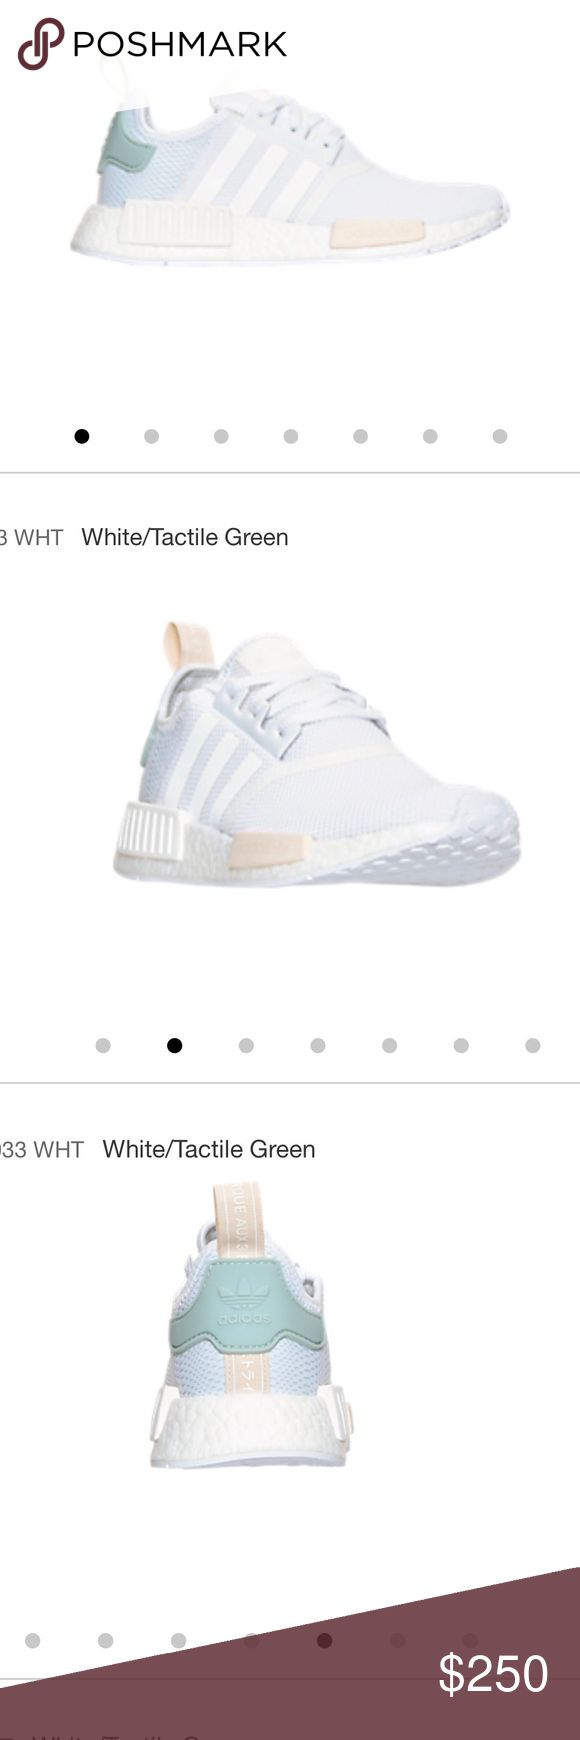 17 best ideas about Nmd White on Pinterest | Adiddas shoes, Fitness shoes  and Nike running shoes women